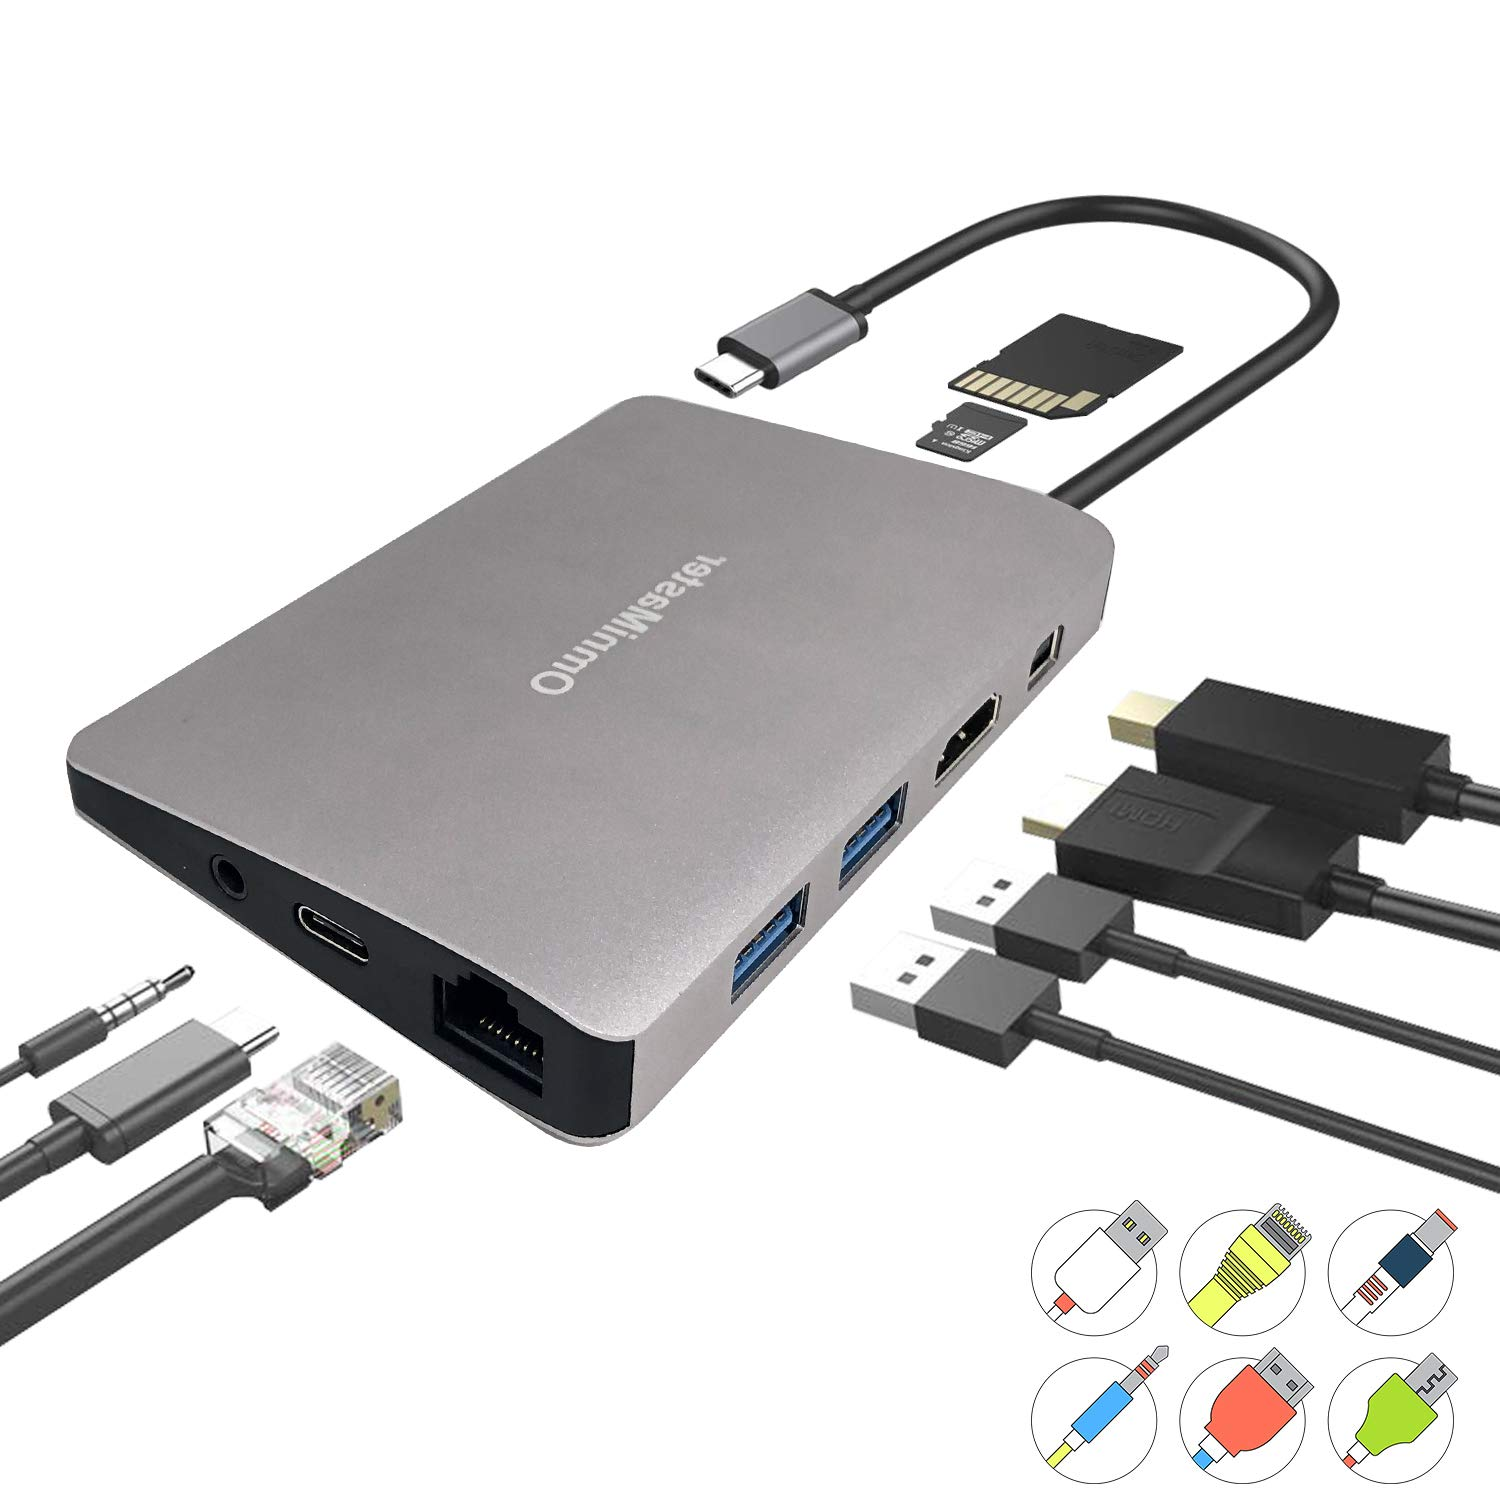 (Latest Gen) OmniMaster 9 in 1 USB C Hub with PD 2.0 Charging Port, 1000M RJ45 Ethernet, 4K HDMI, Mini DP, USB 3.0 Ports, Card Reader, Audio/Mic Port for MacBook, Surface Book, Chromebook, Matebook